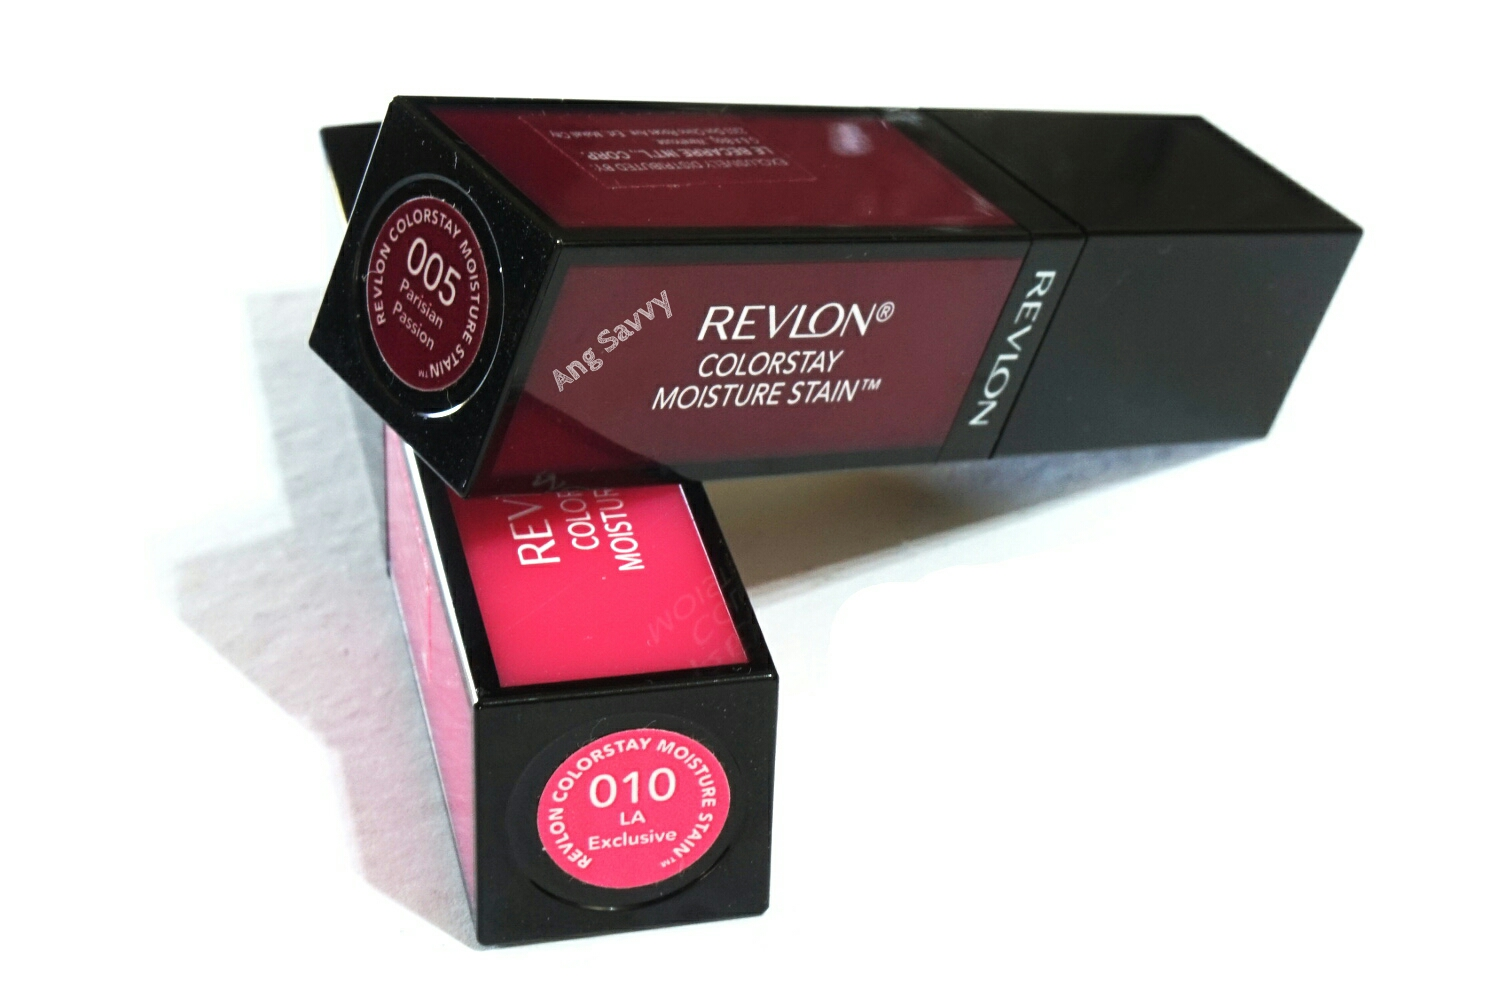 Revlon Colorstay Moisture Stains in 010 LA Exclusive